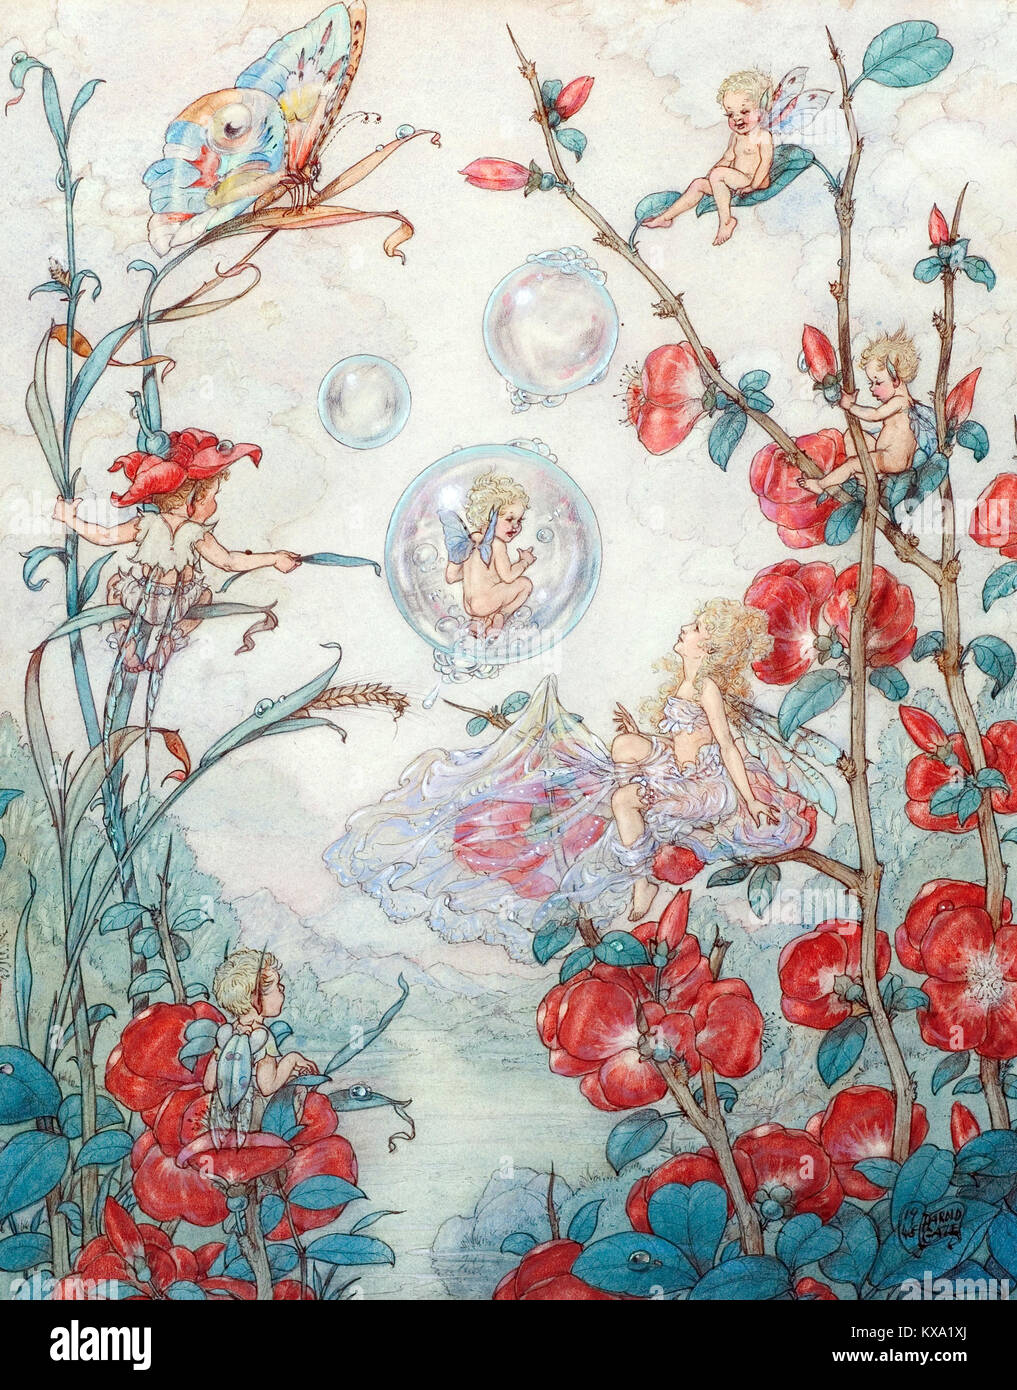 Fairies and Bubbles - Stock Image